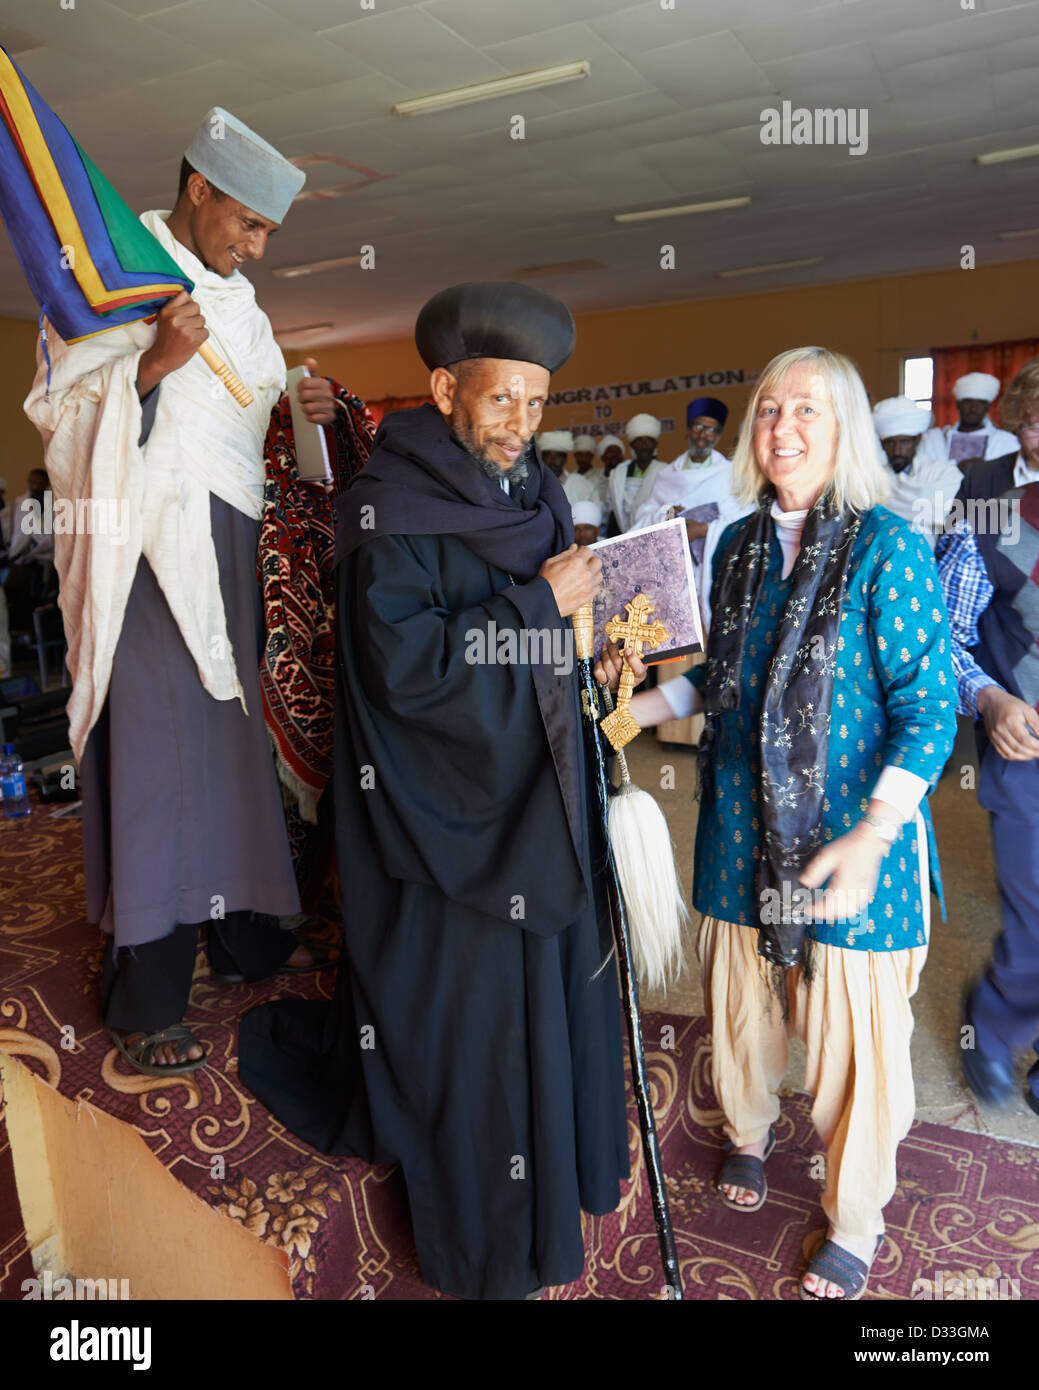 """Margaret """"Canopy Meg"""" Lowman with a Christian Priest at a conference on the conservation of church forests in Ethiopia. Stock Photo"""